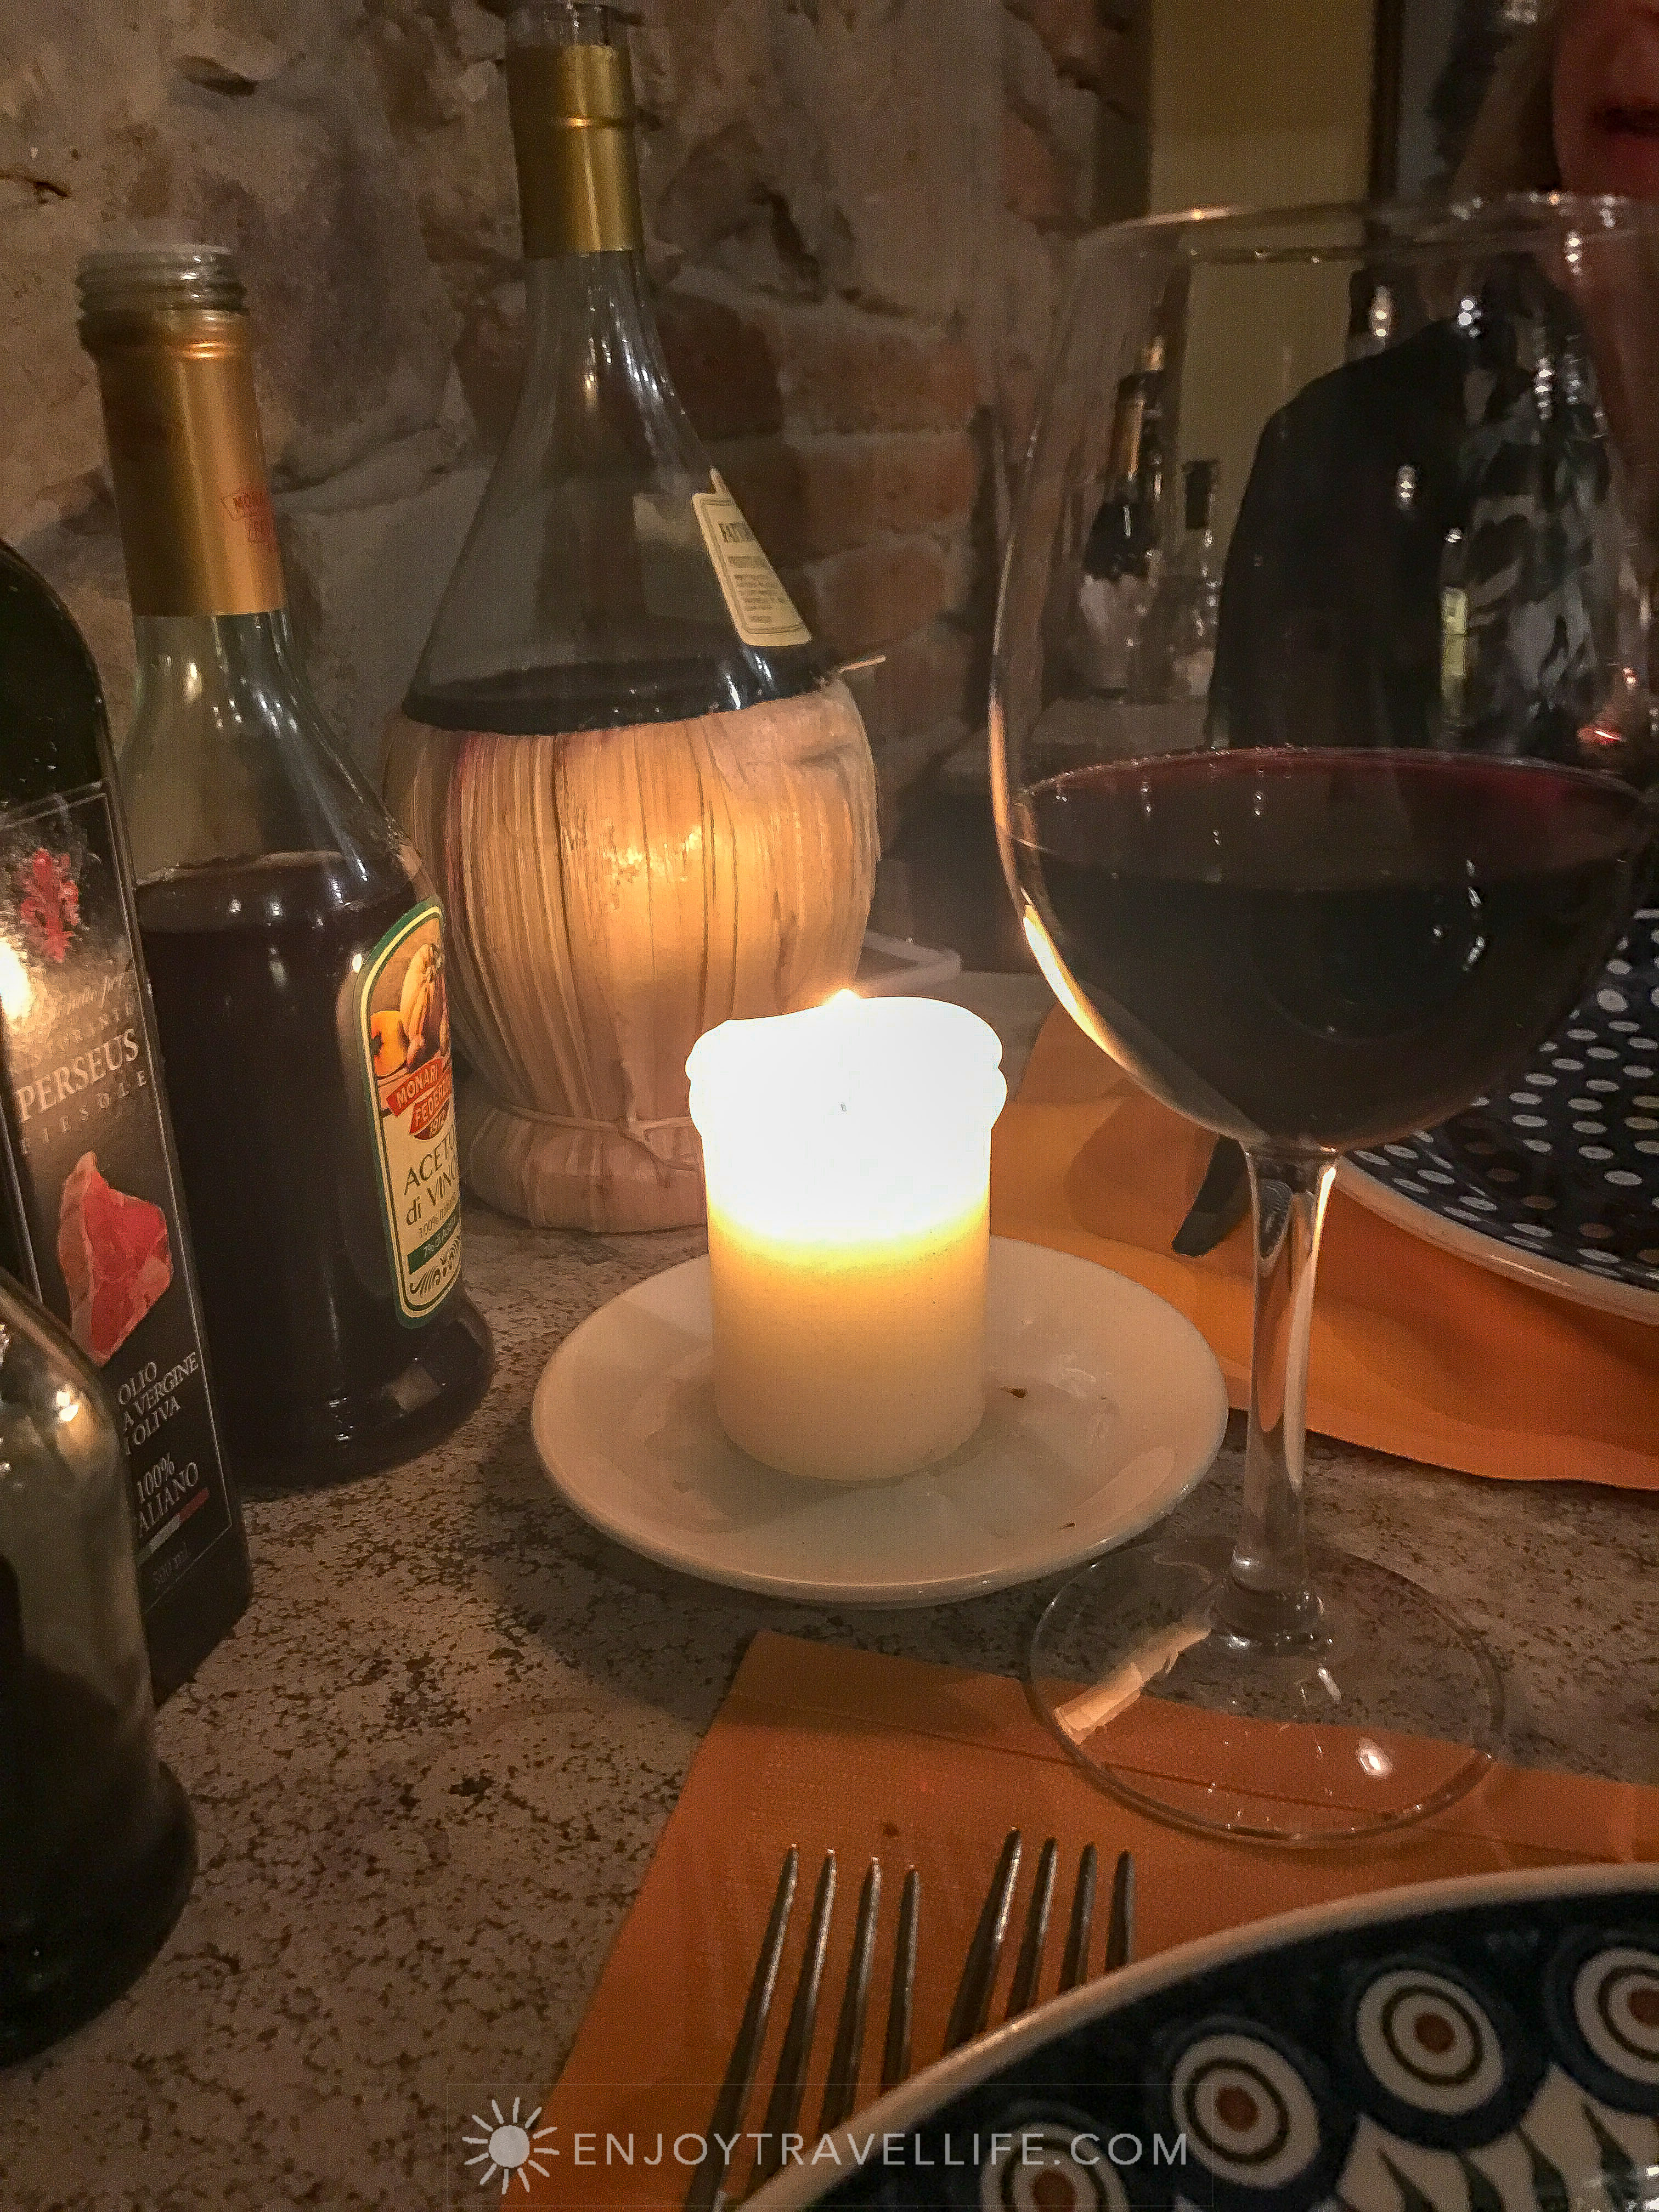 Tuscan comfort food in Fiesole at Il Fiesolano - Chianti and candlelight